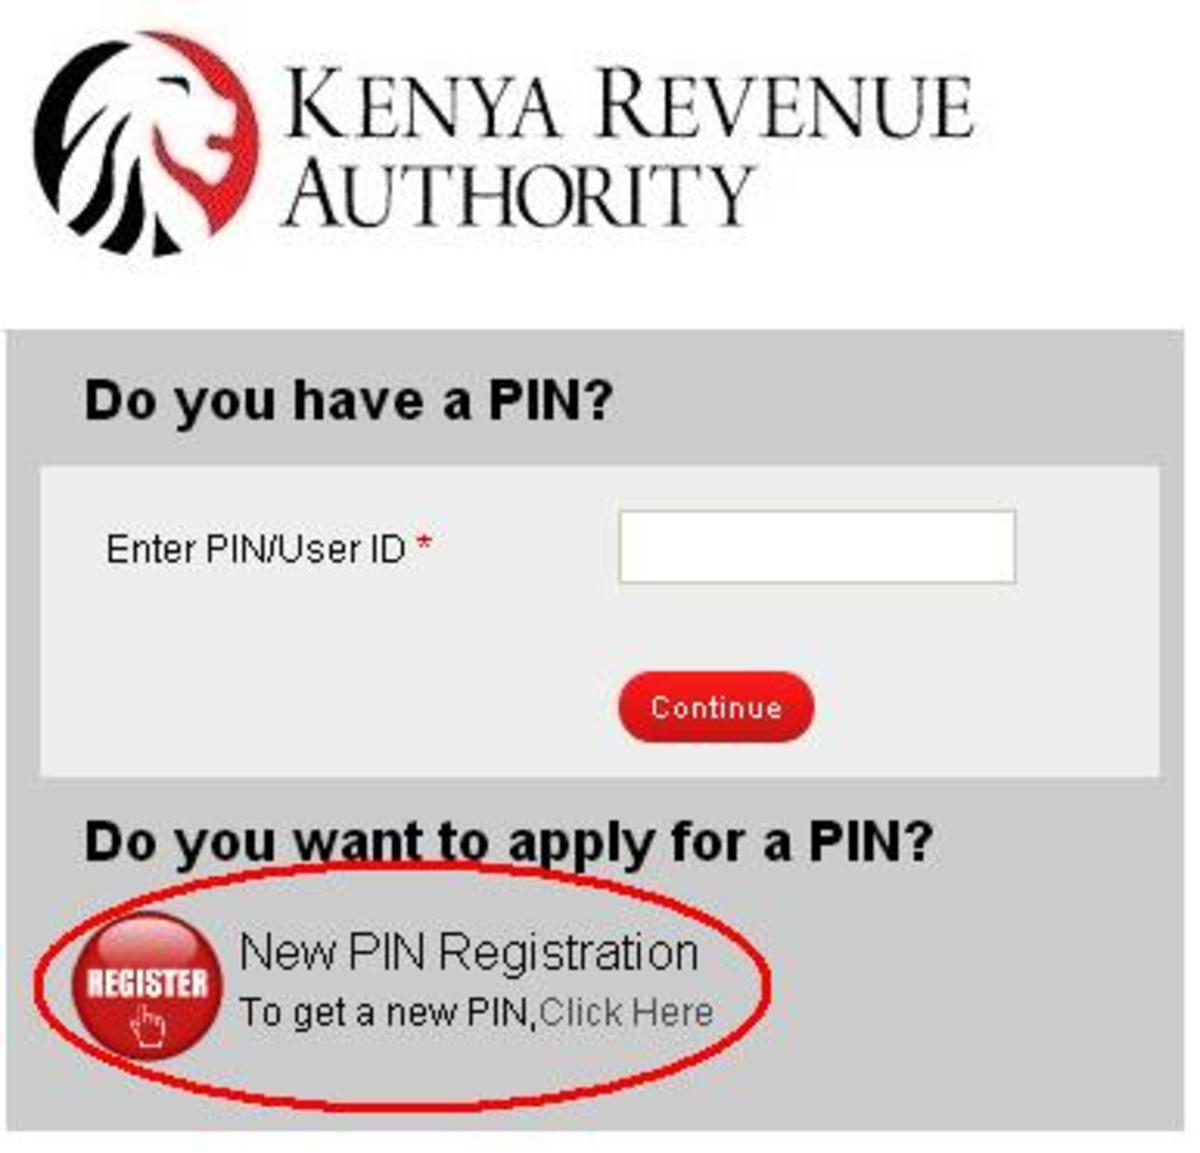 Click on Register to start the process of Itax PIN application